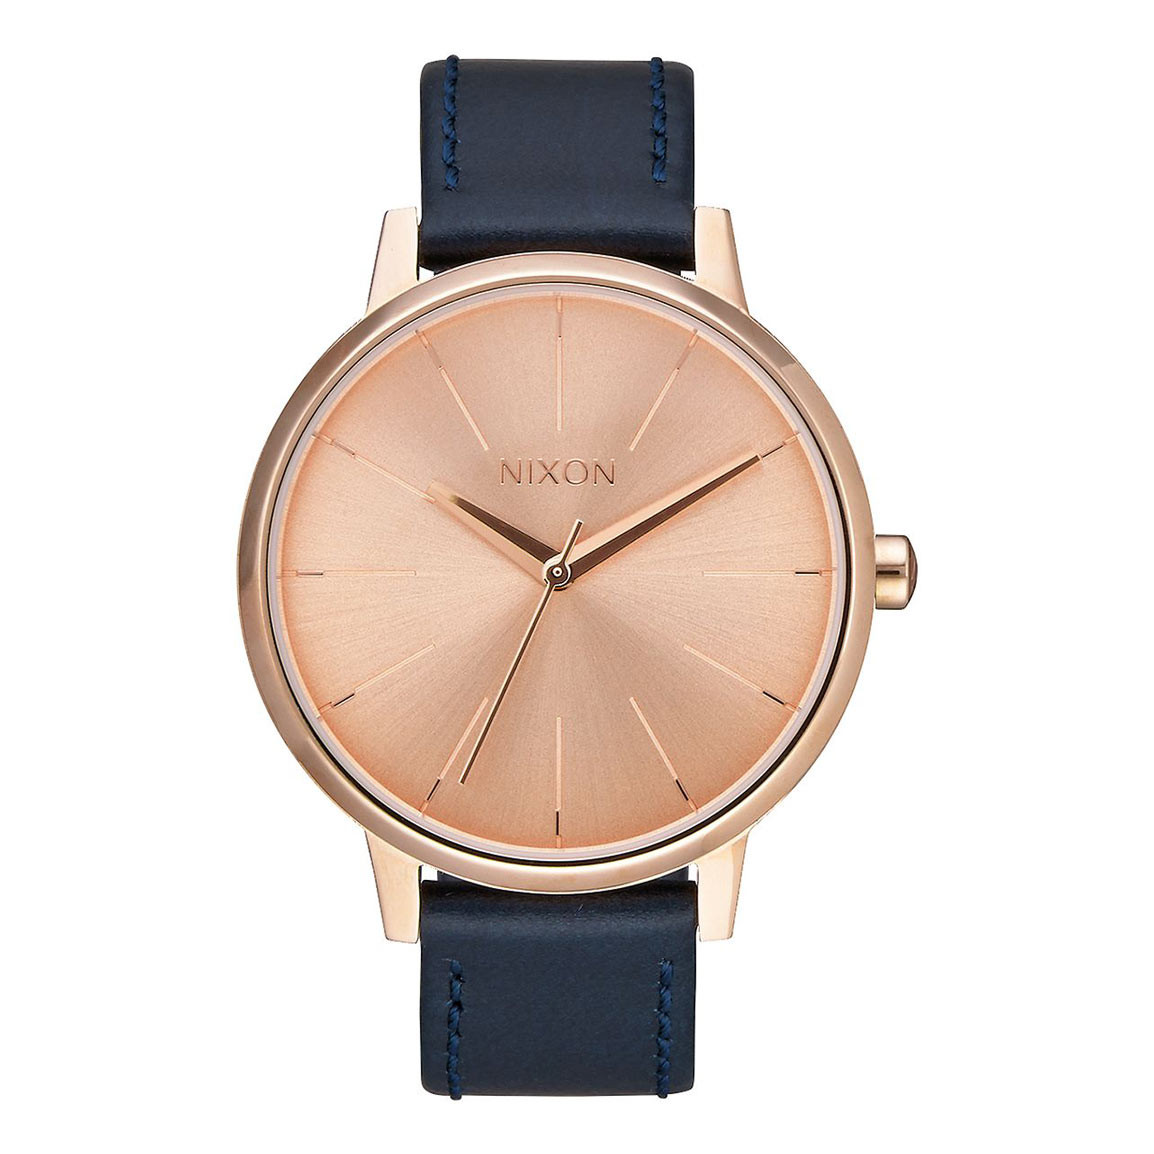 Hodinky Nixon Kensington Leather rose gold/navy